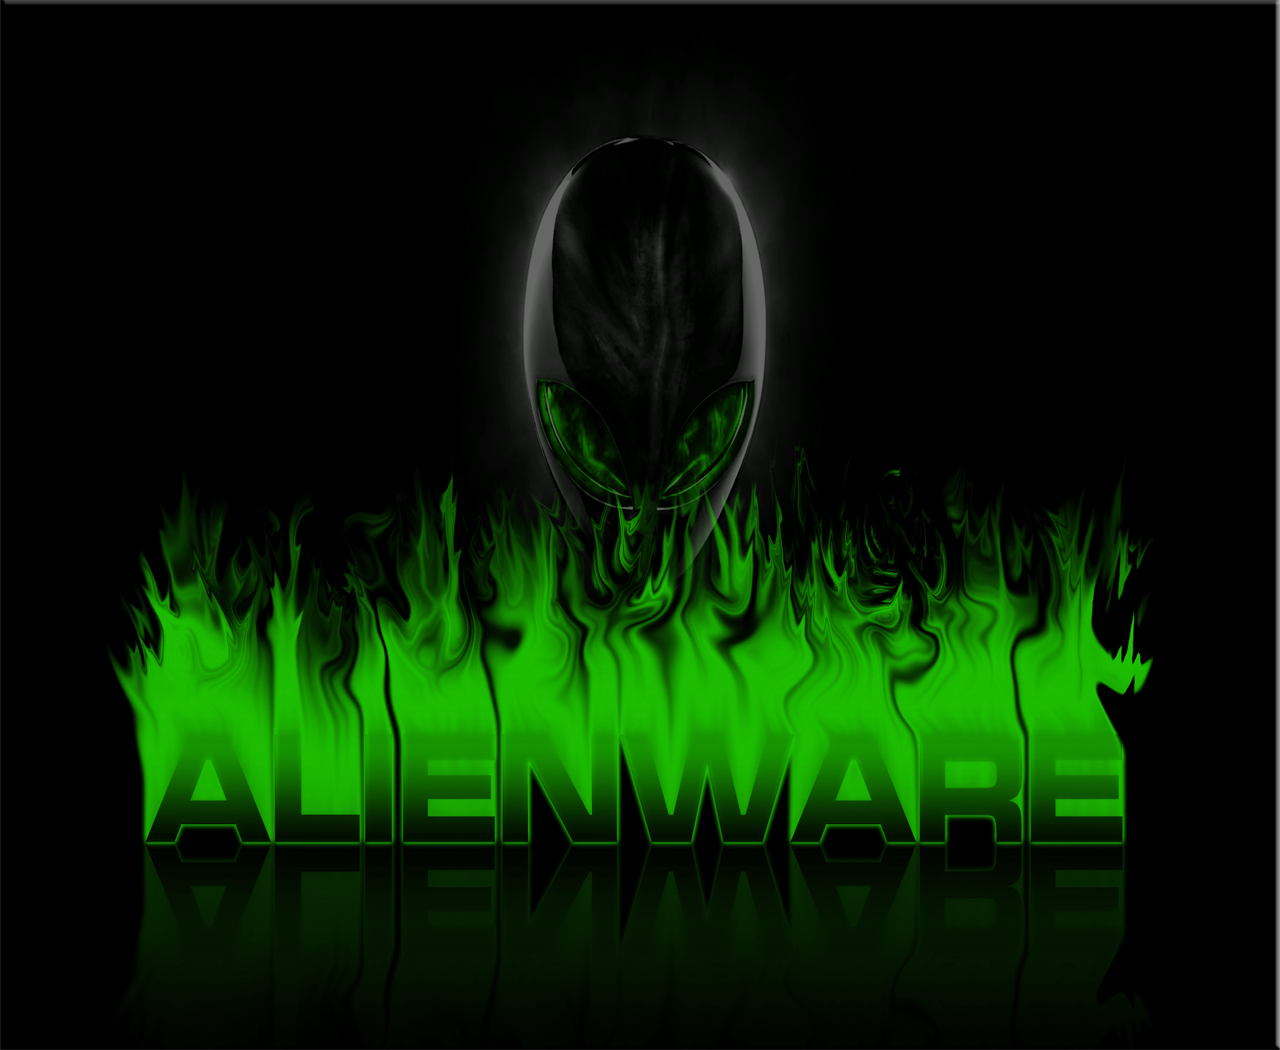 Green Alienware Wallpapers 1280x1050